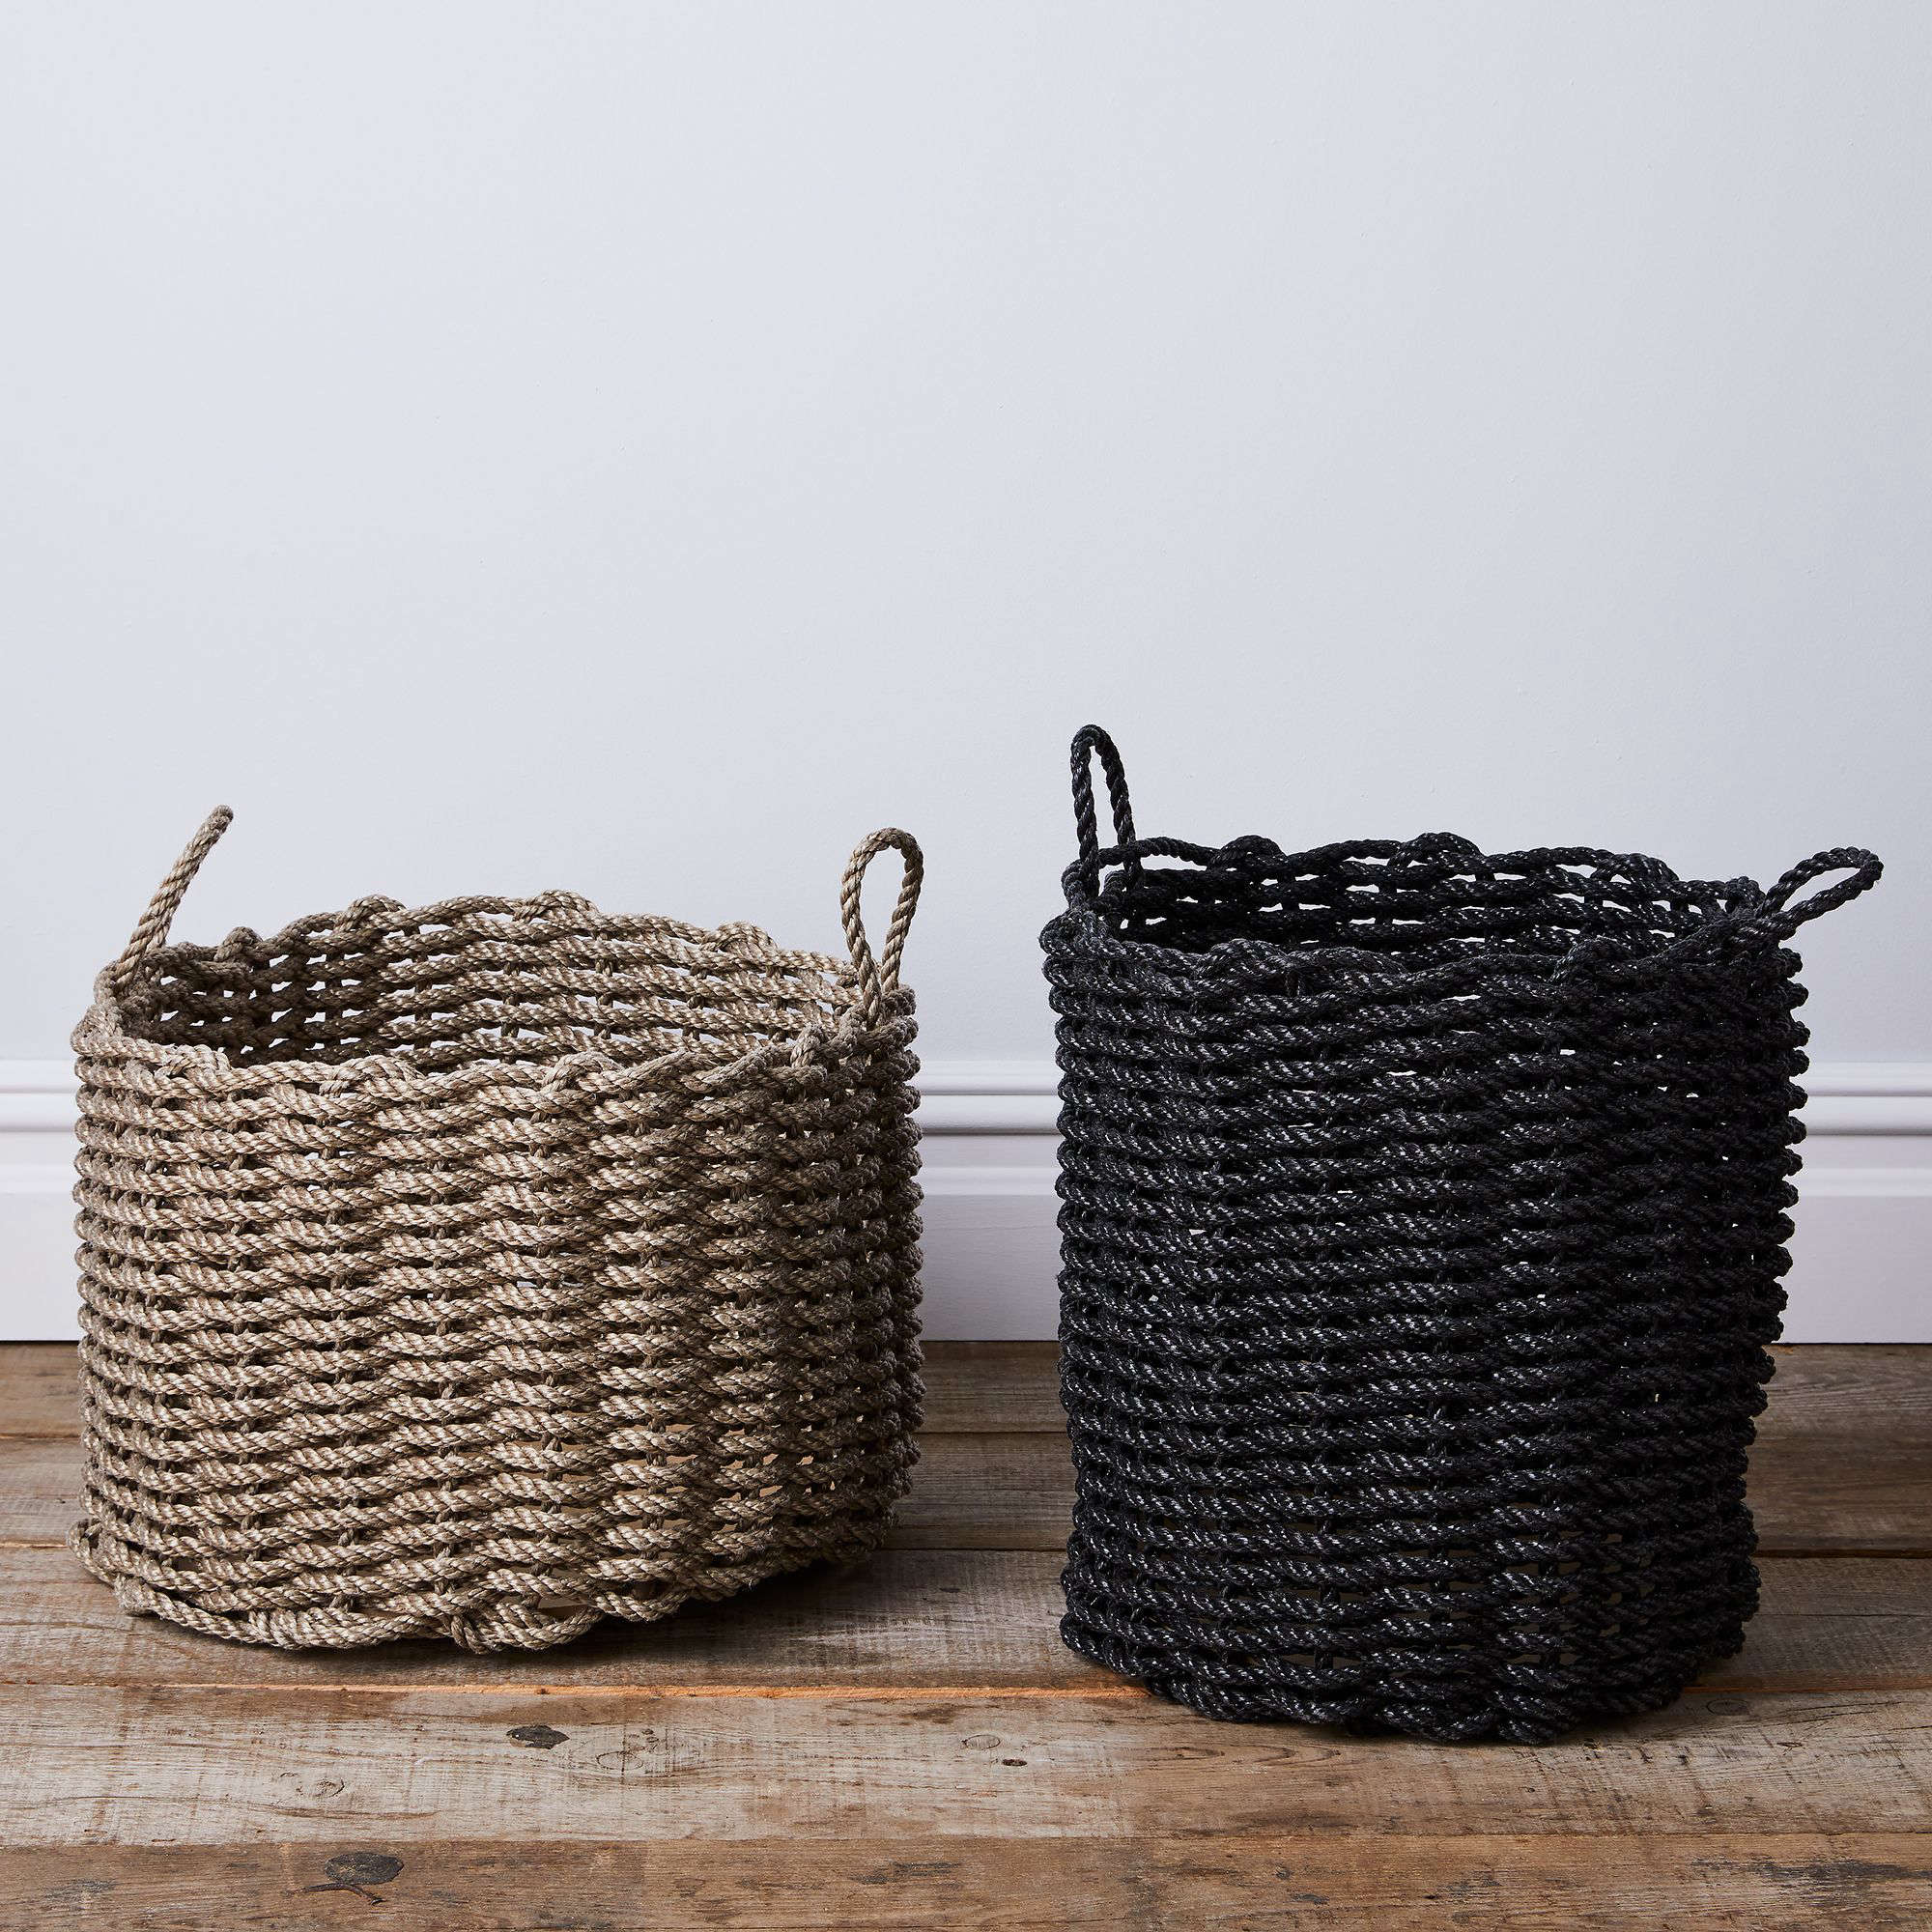 Made In Maine Rugged Baskets And Doormats Woven From